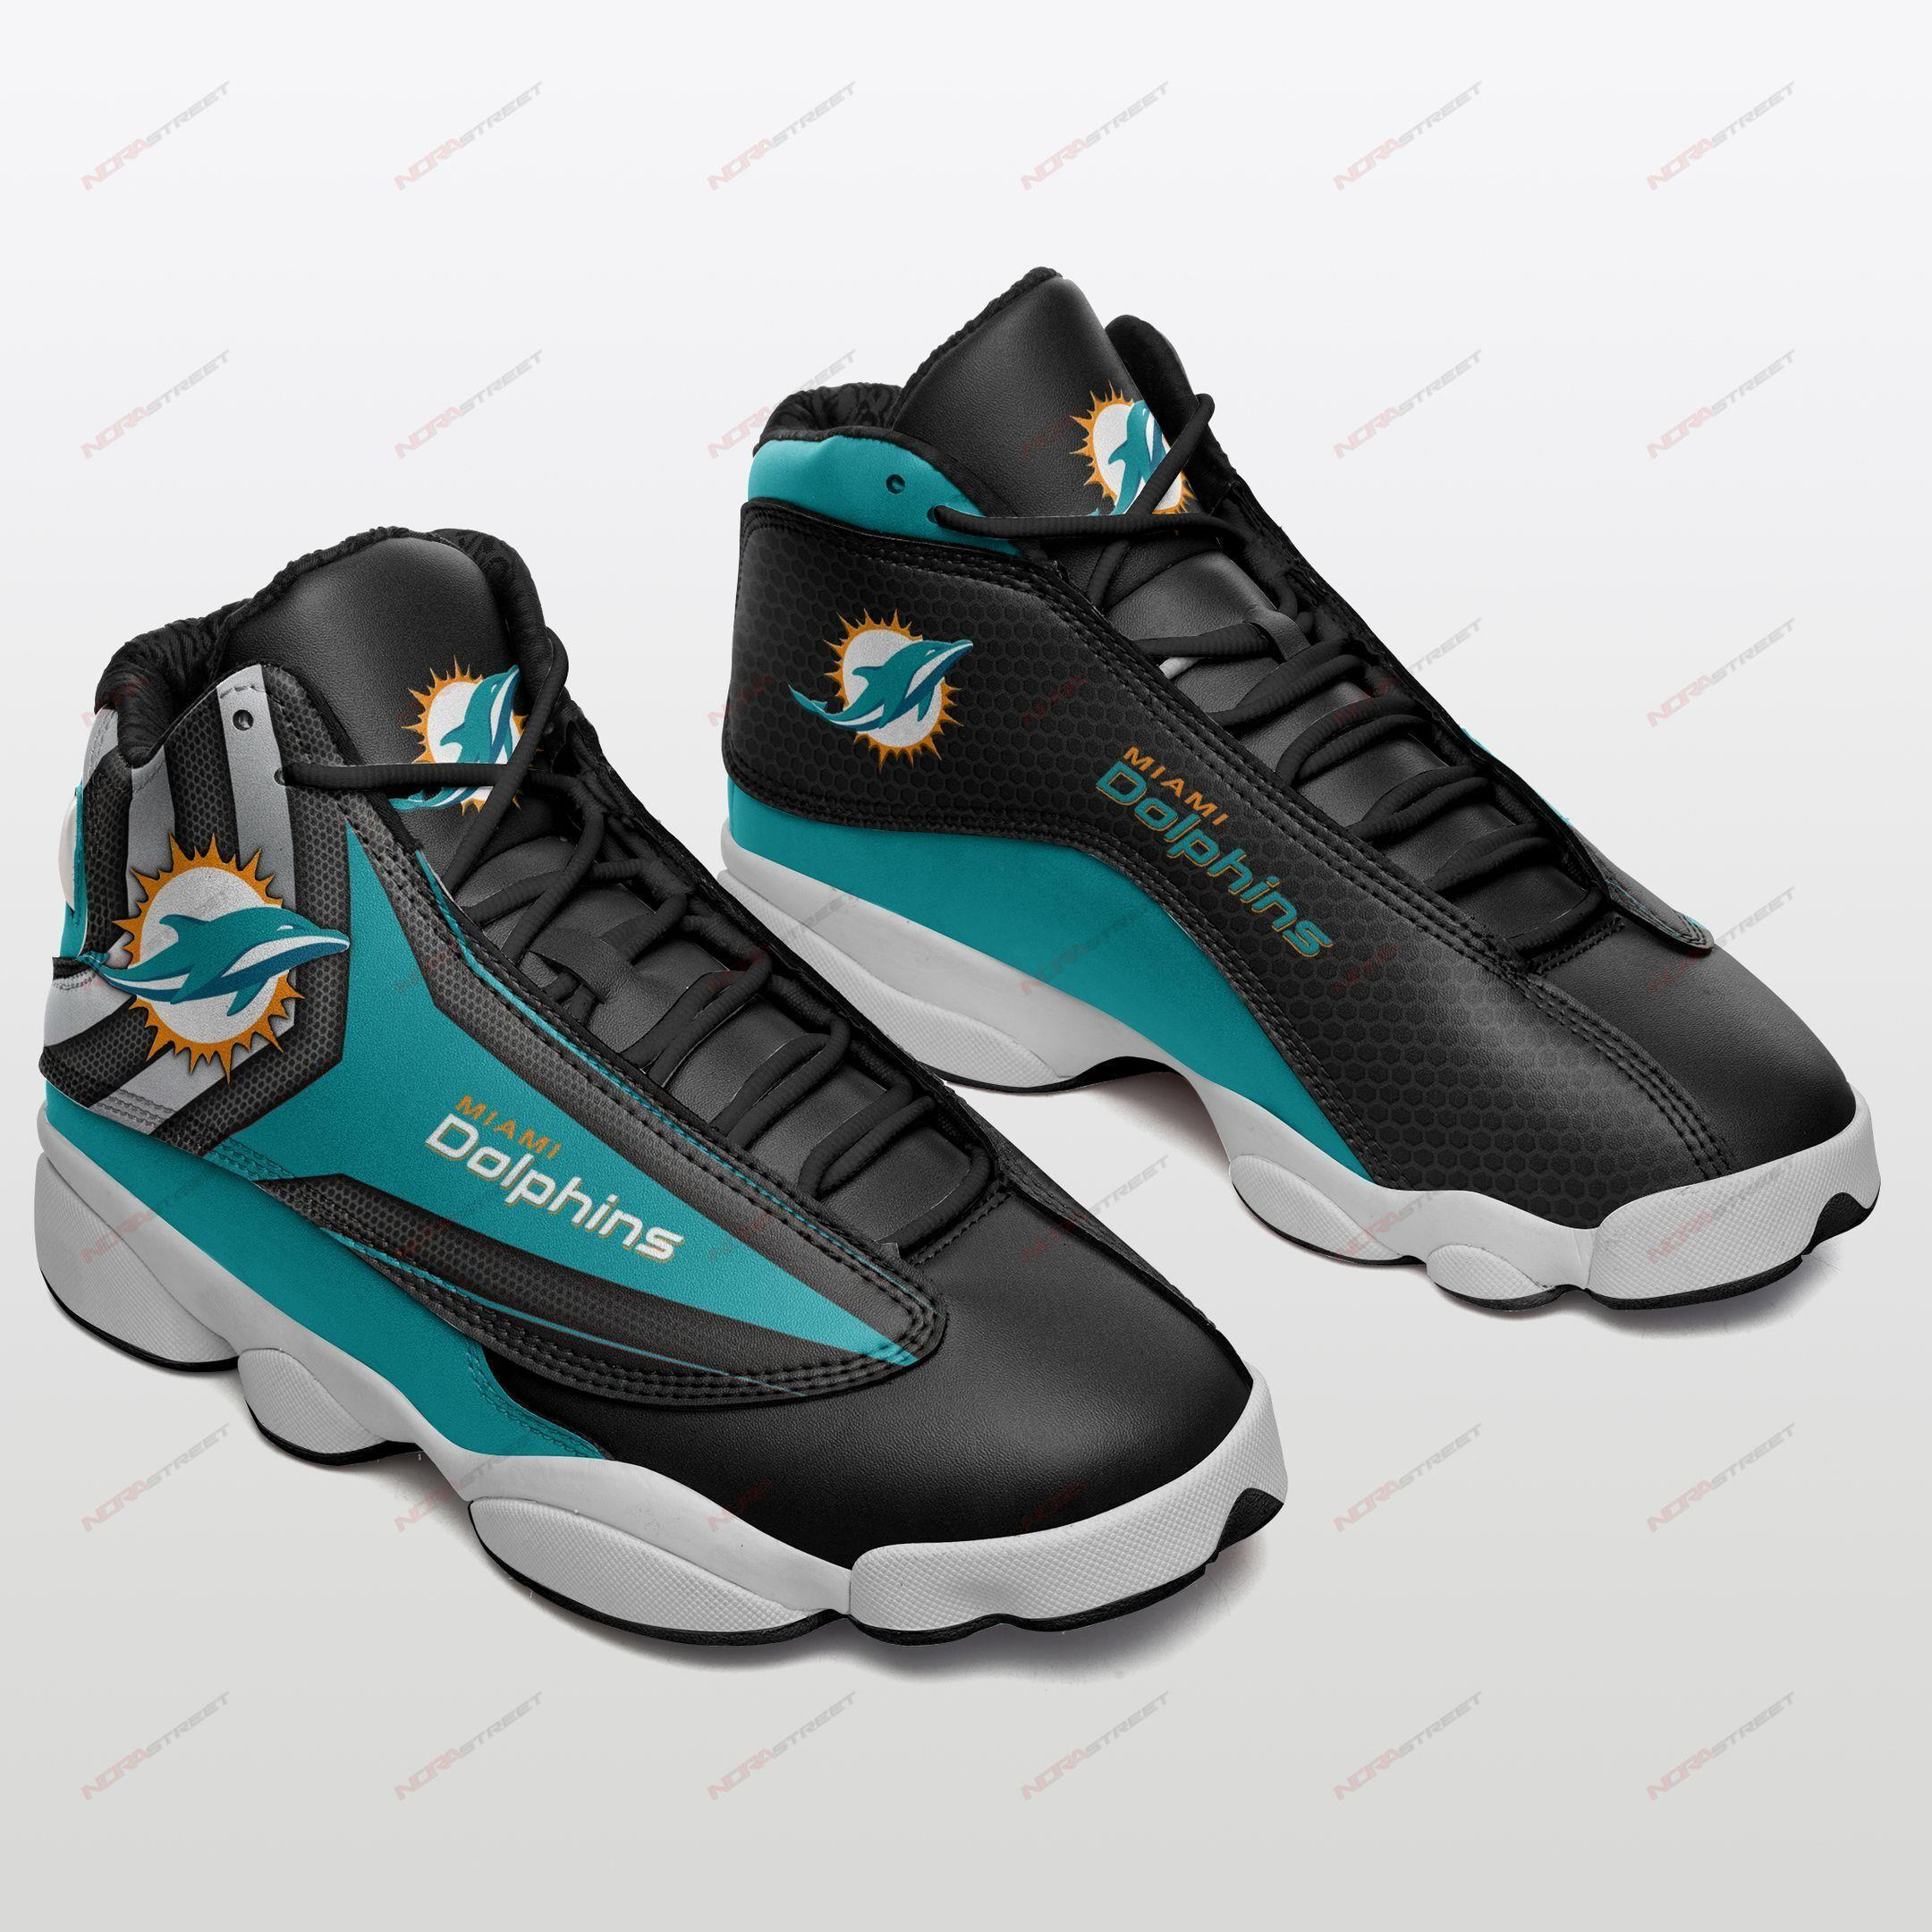 Miami Dolphins Air Jordan 13 Sneakers Sport Shoes Full Size